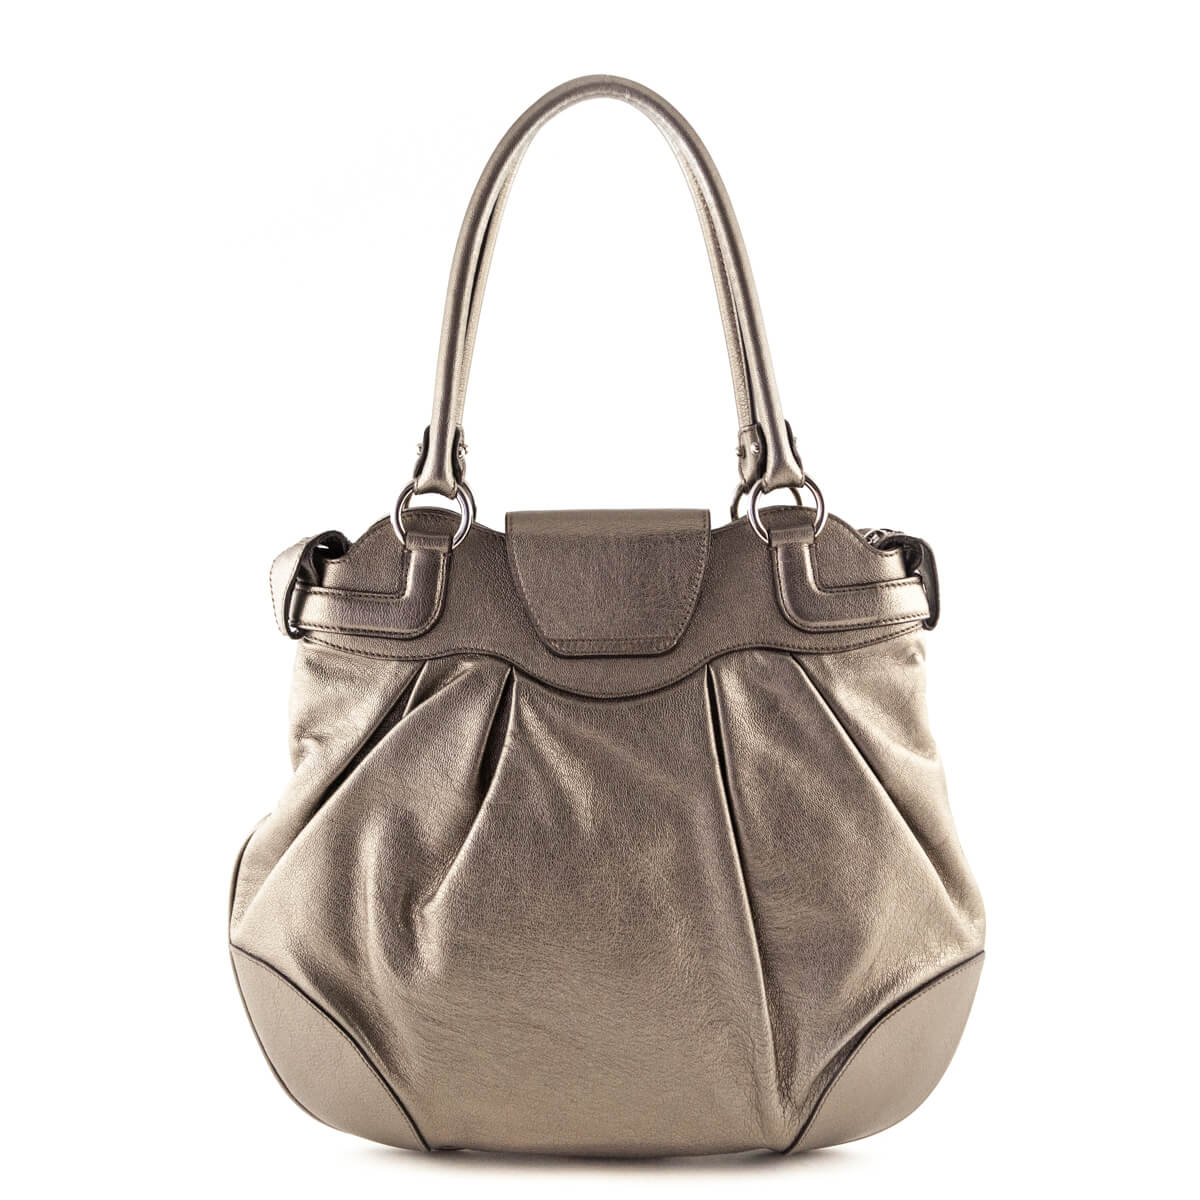 ... Salvatore Ferragamo Pewter Marisa Shoulder Bag - LOVE that BAG -  Preowned Authentic Designer Handbags ... ab3e091b4e